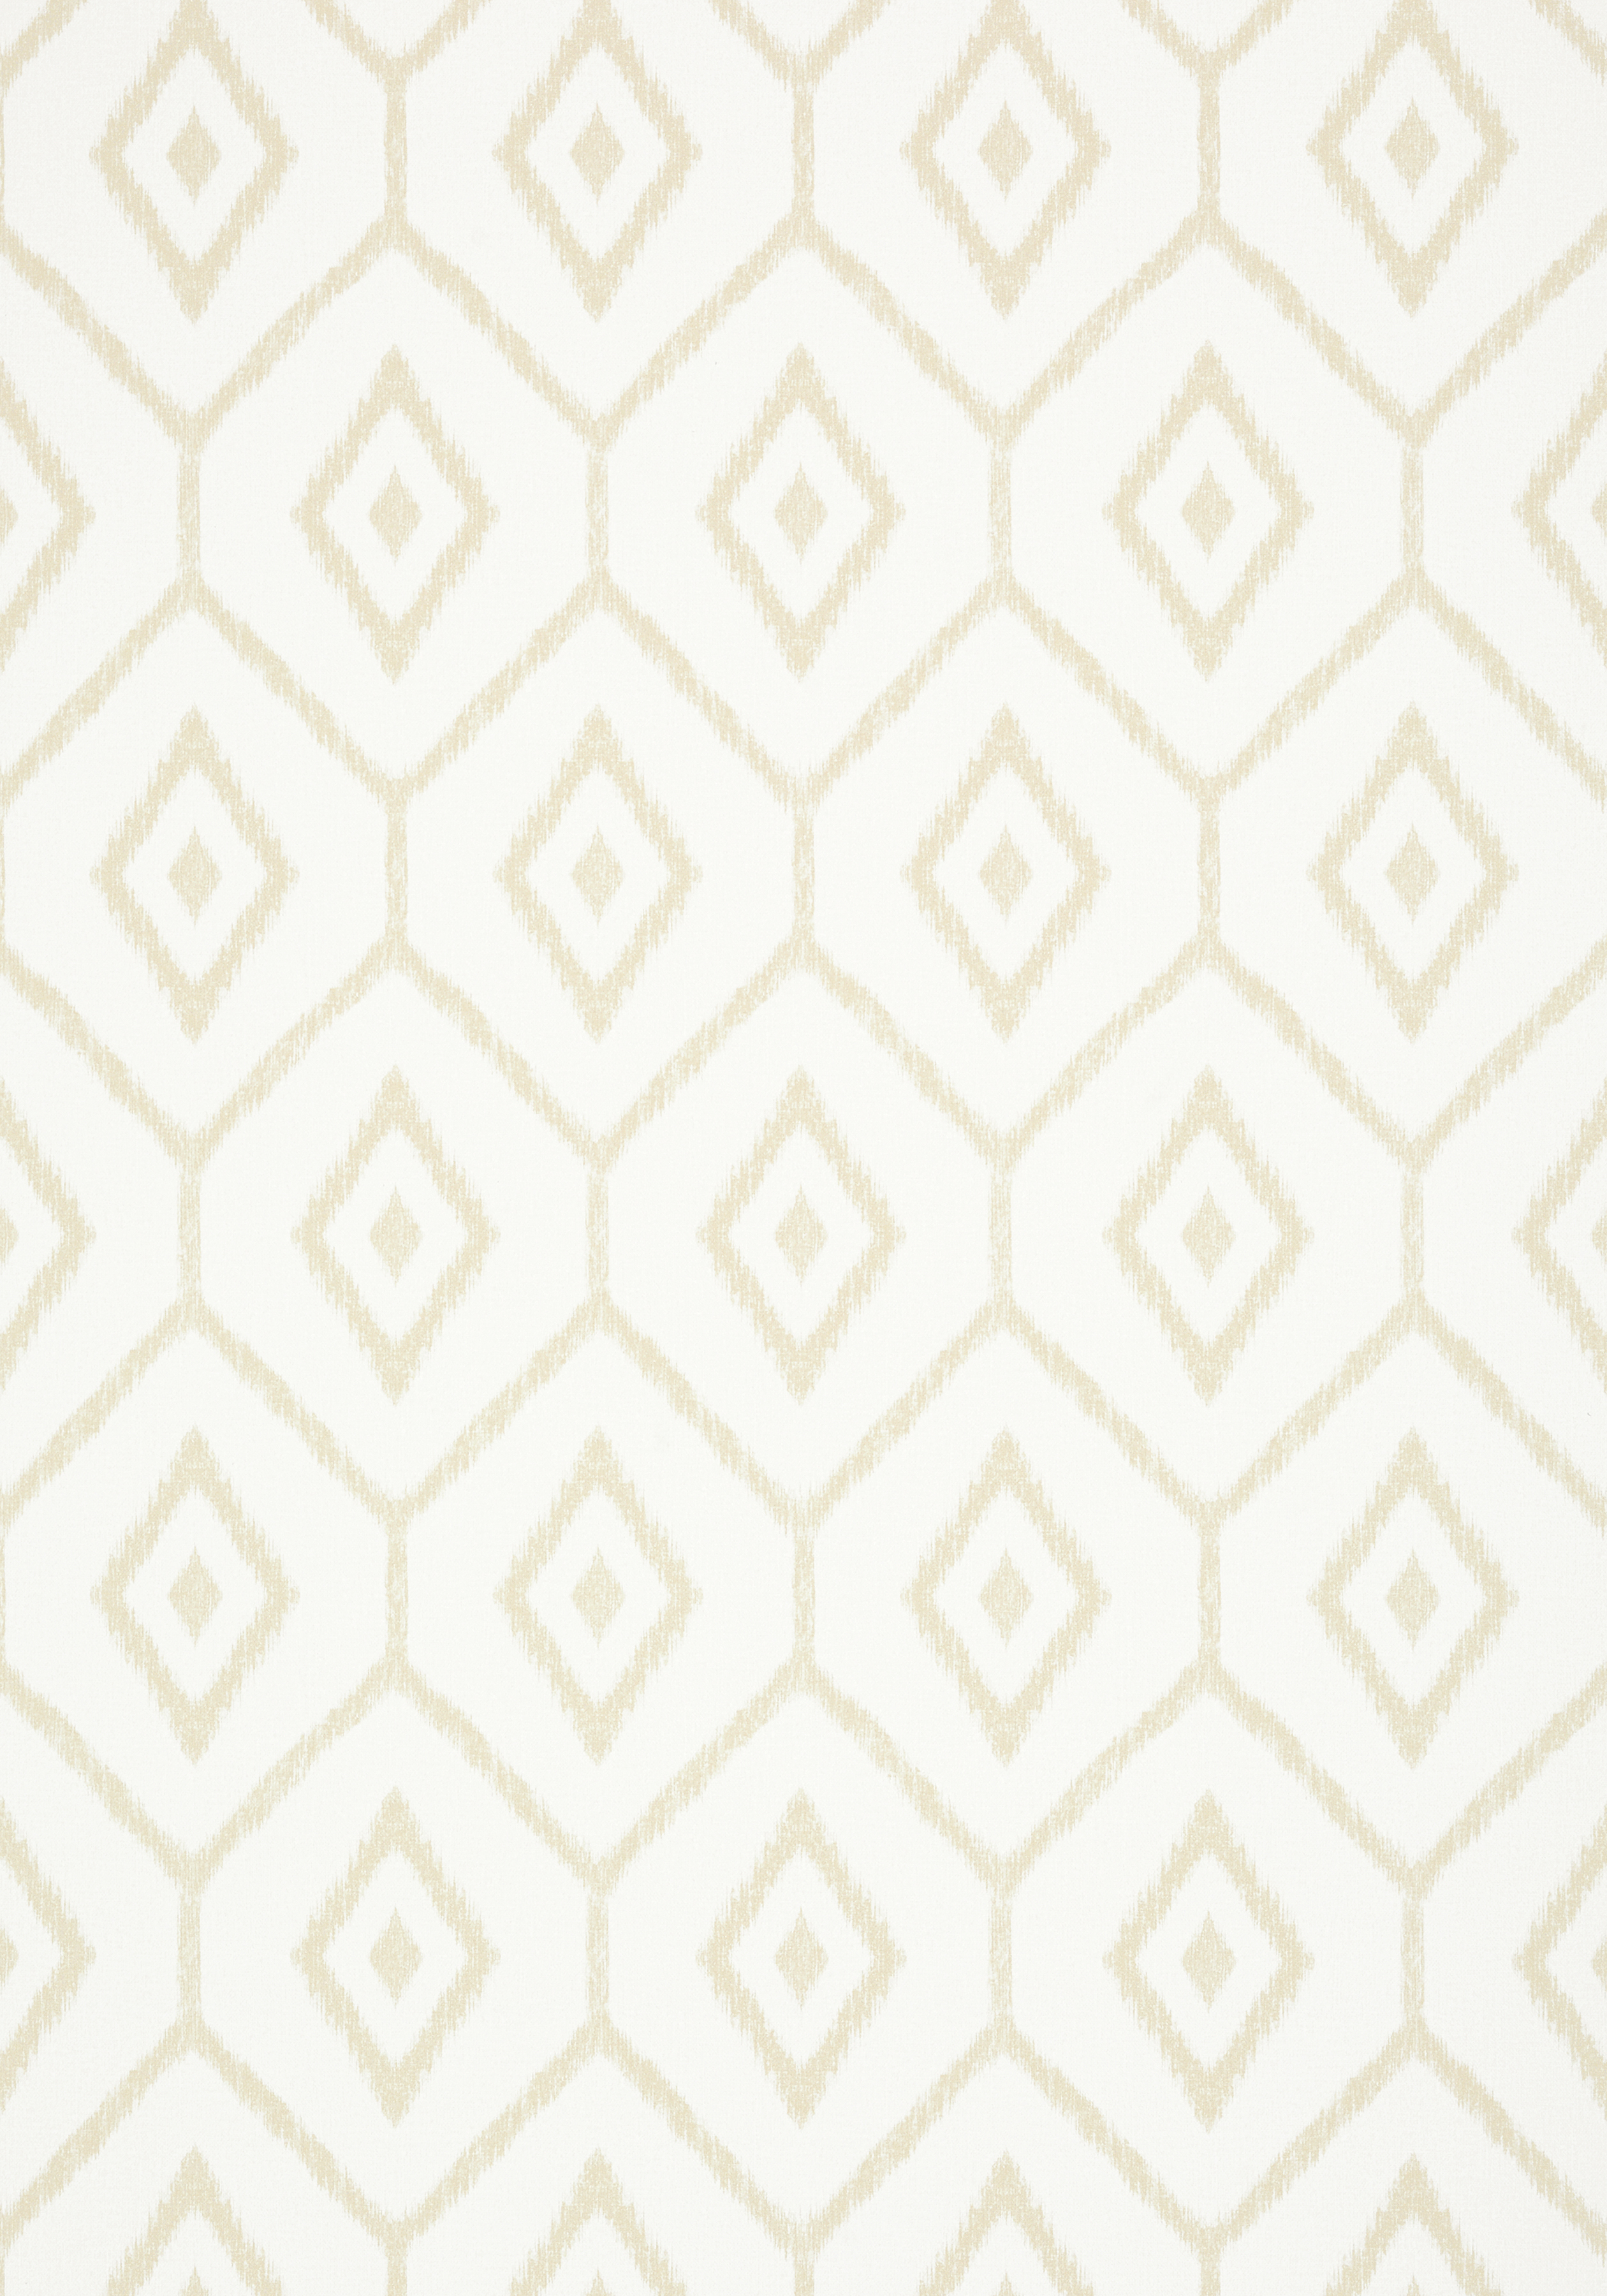 BARI-IKAT-Beige-T-Collection-Caravan-from-Thibaut-wallpaper-wpc9002588